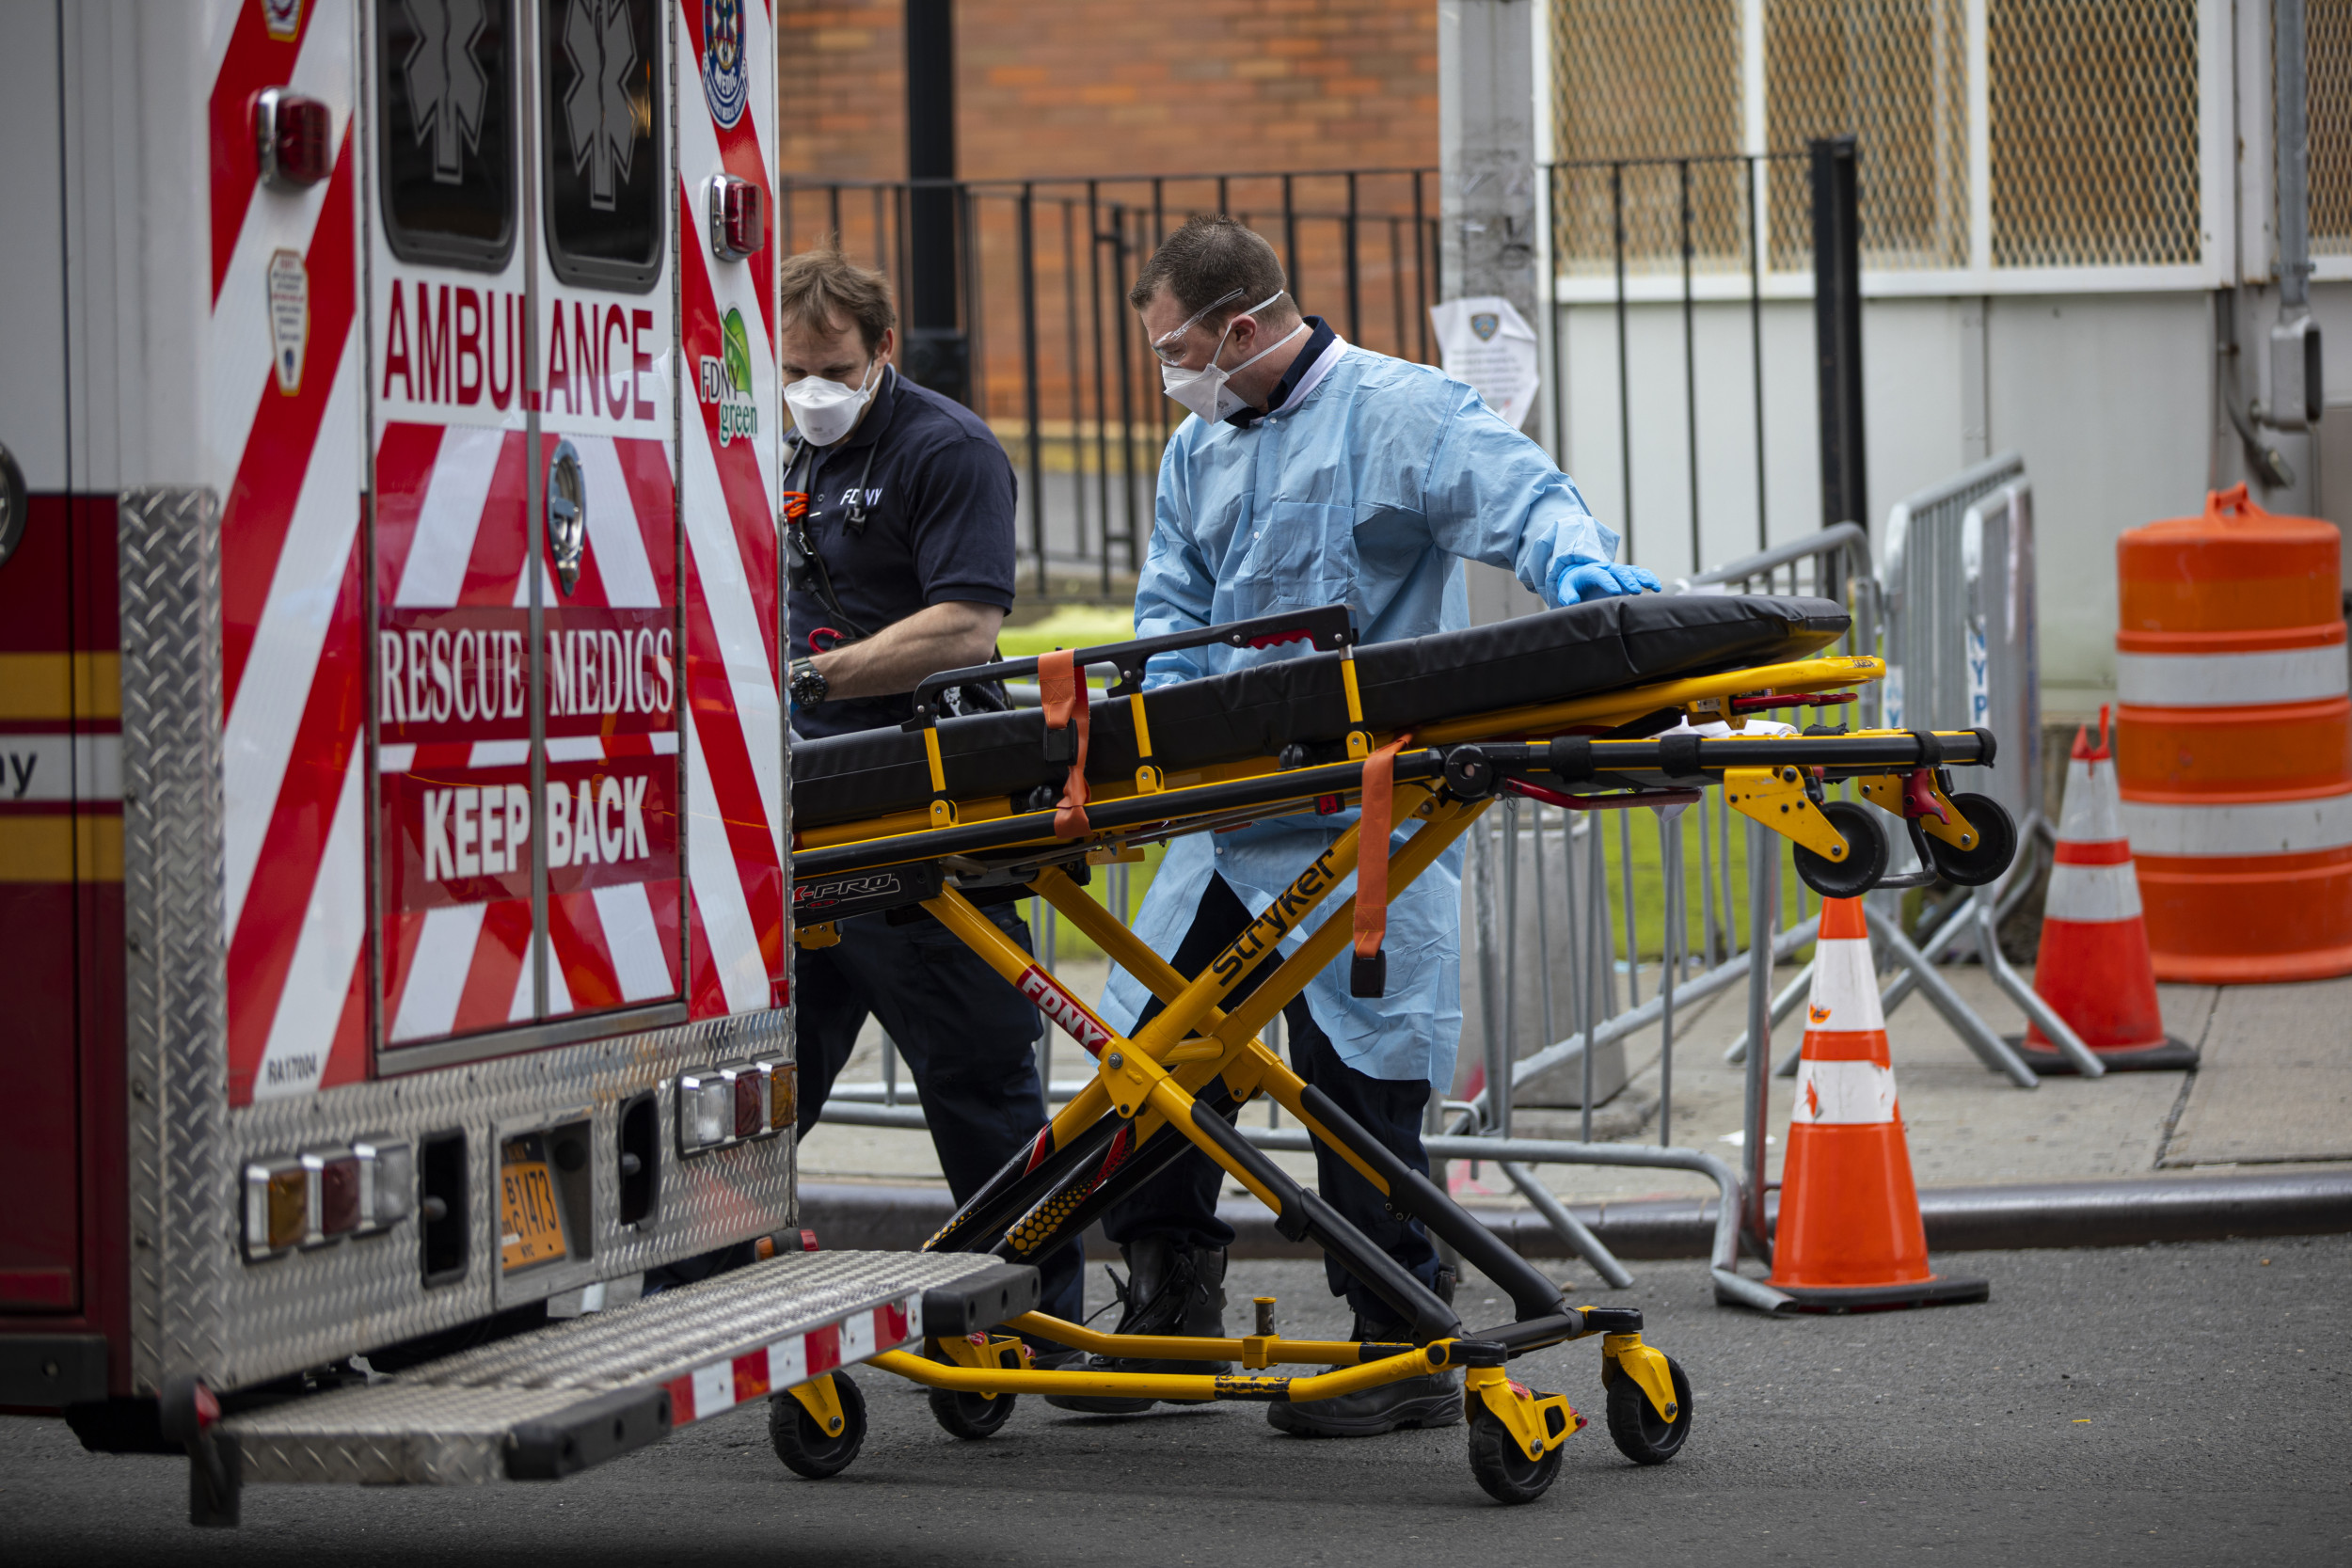 Man Escapes From Stretcher, Flees Ambulance in Video Viewed 6.9M Times